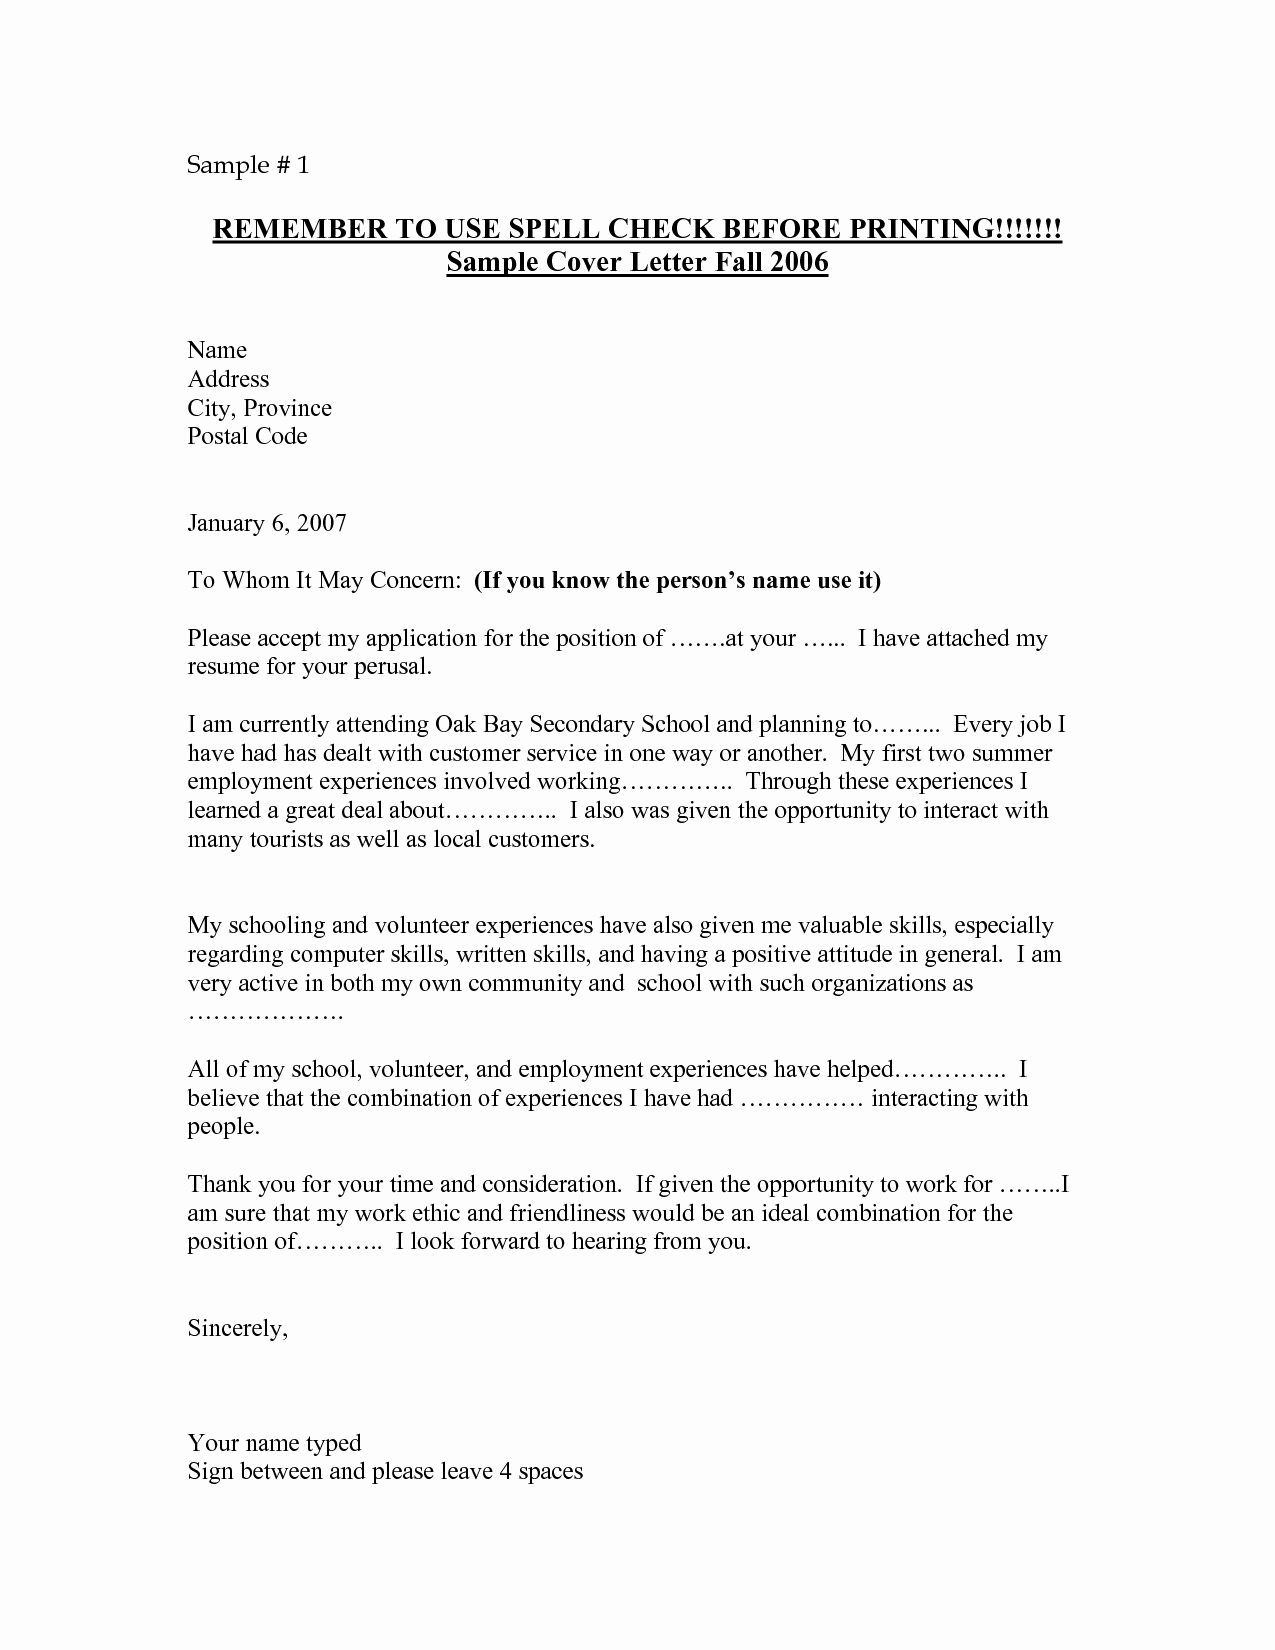 Concerned Letter Sample Luxury Writing A Business Letter to whom It May Concern Capitalized